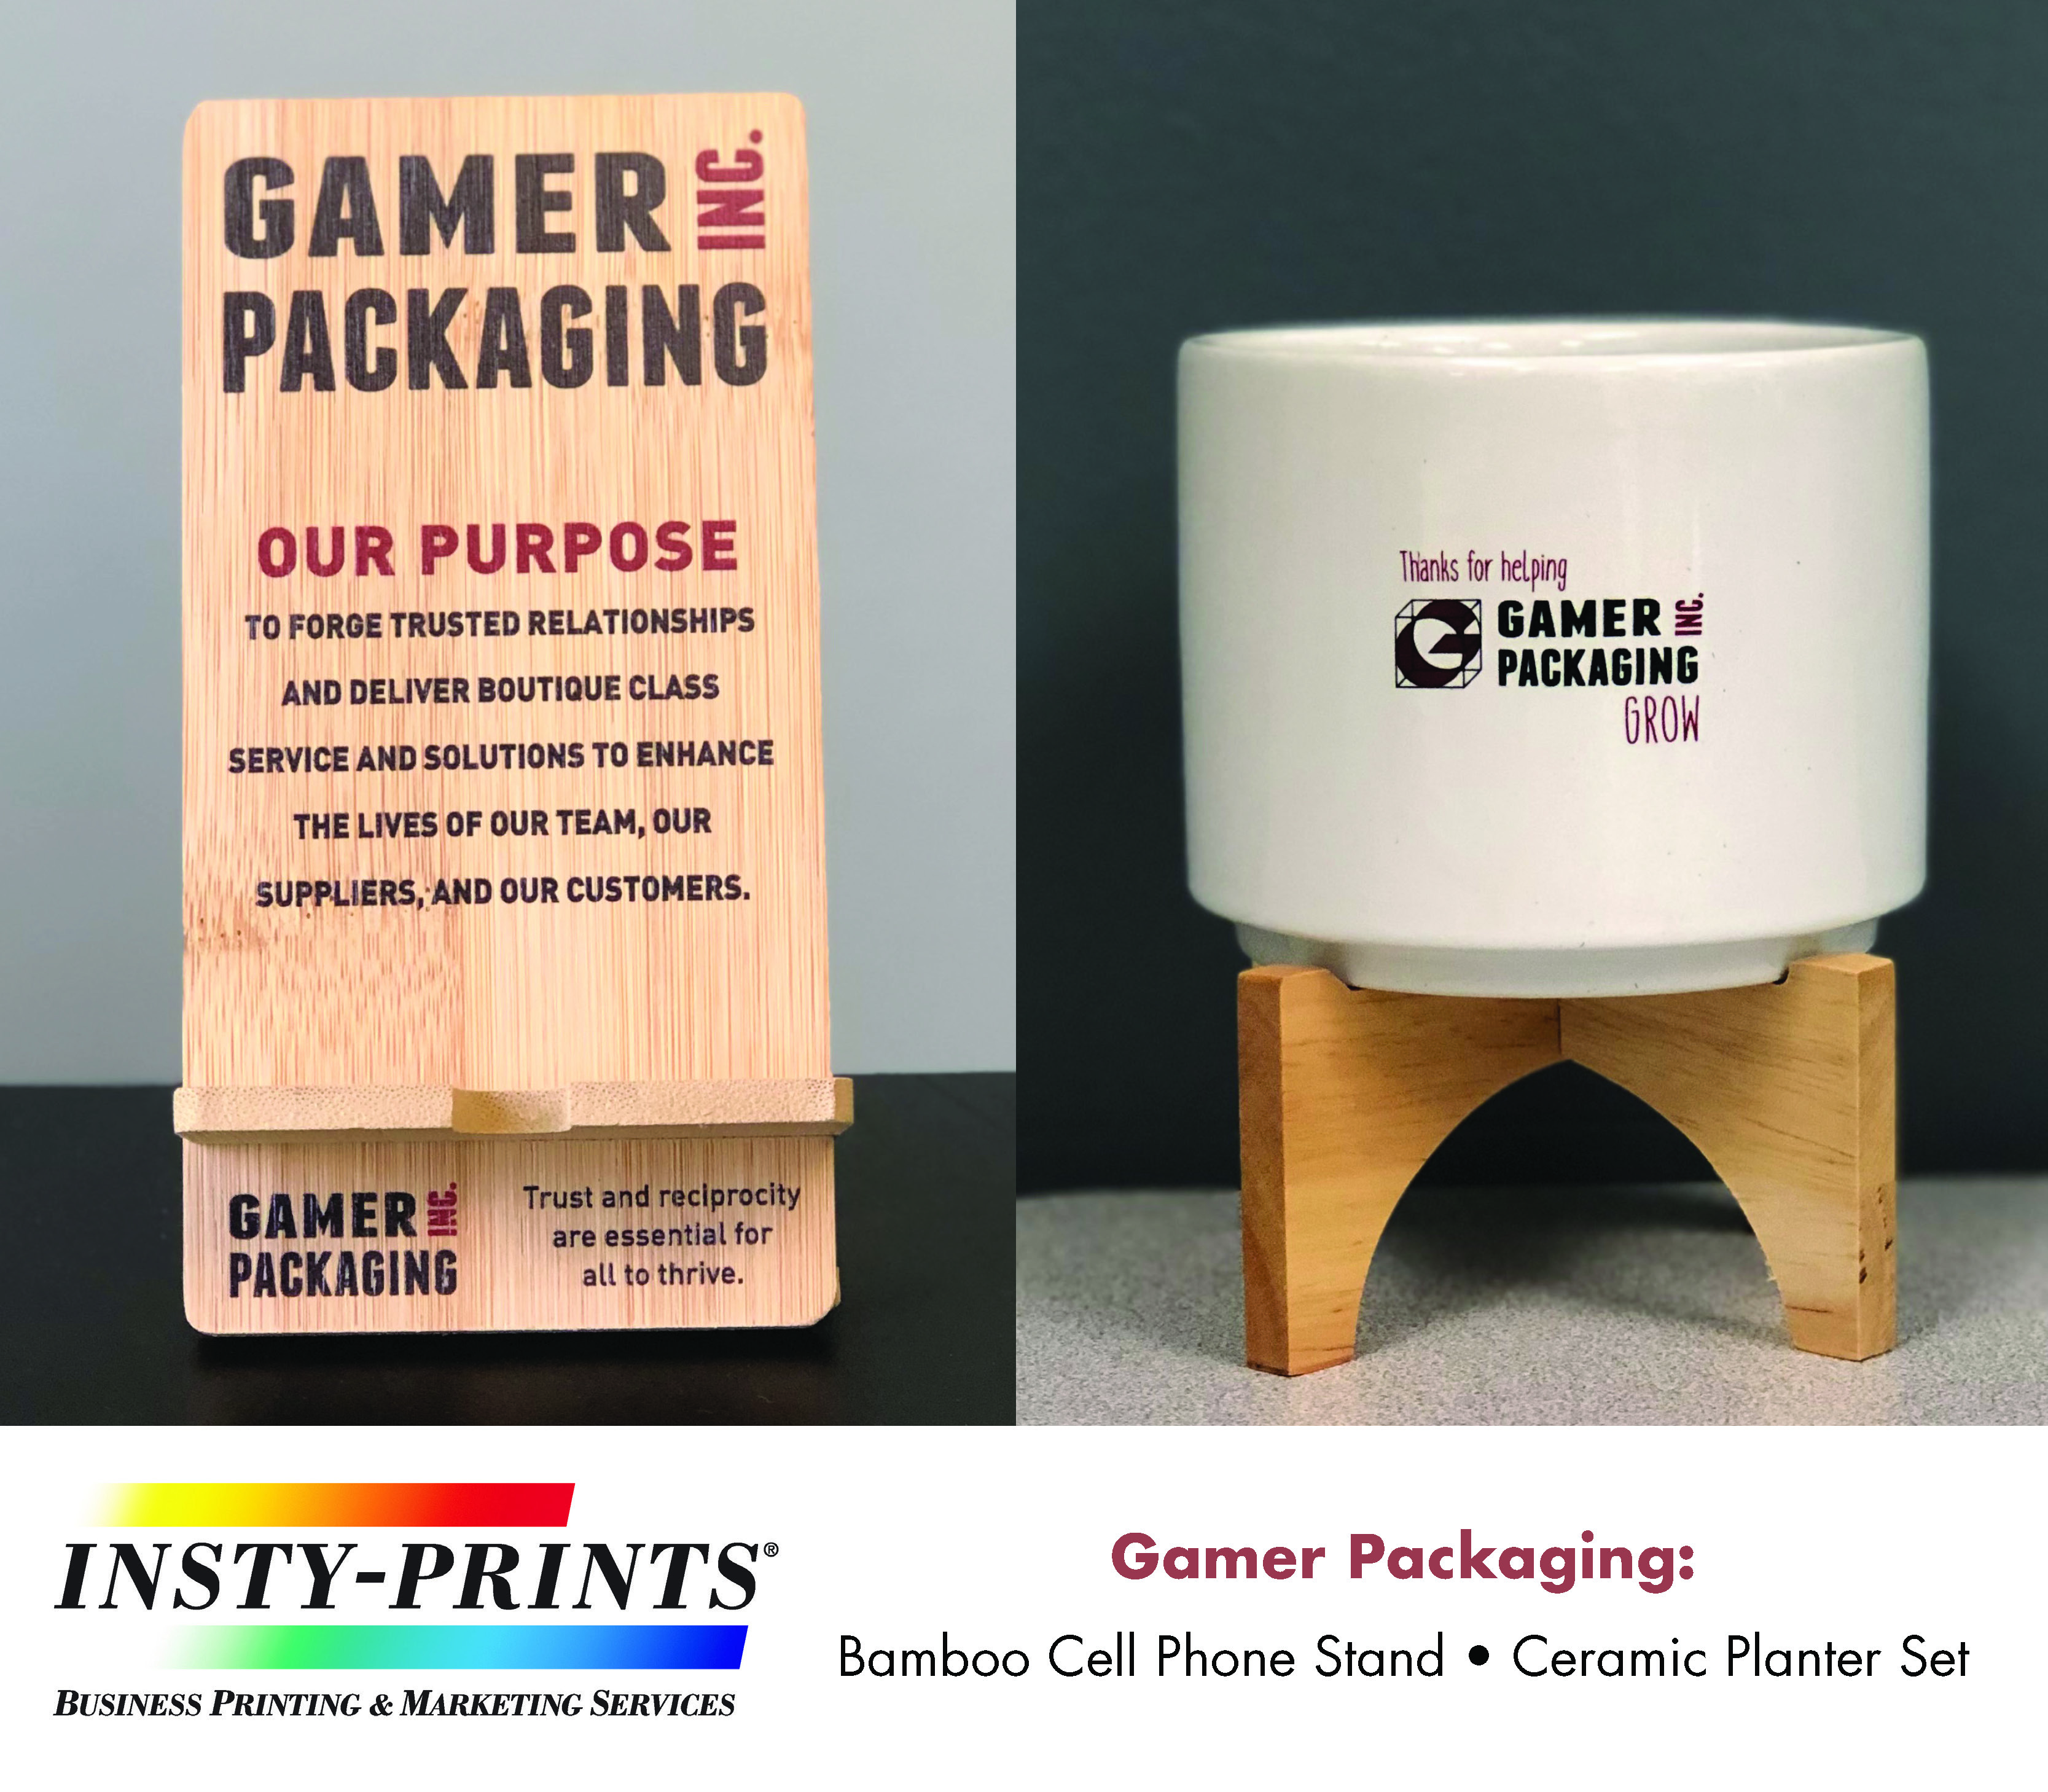 Cell phone holder and desktop plant pot with stand, each with the Gamer Packaging Inc Branding.